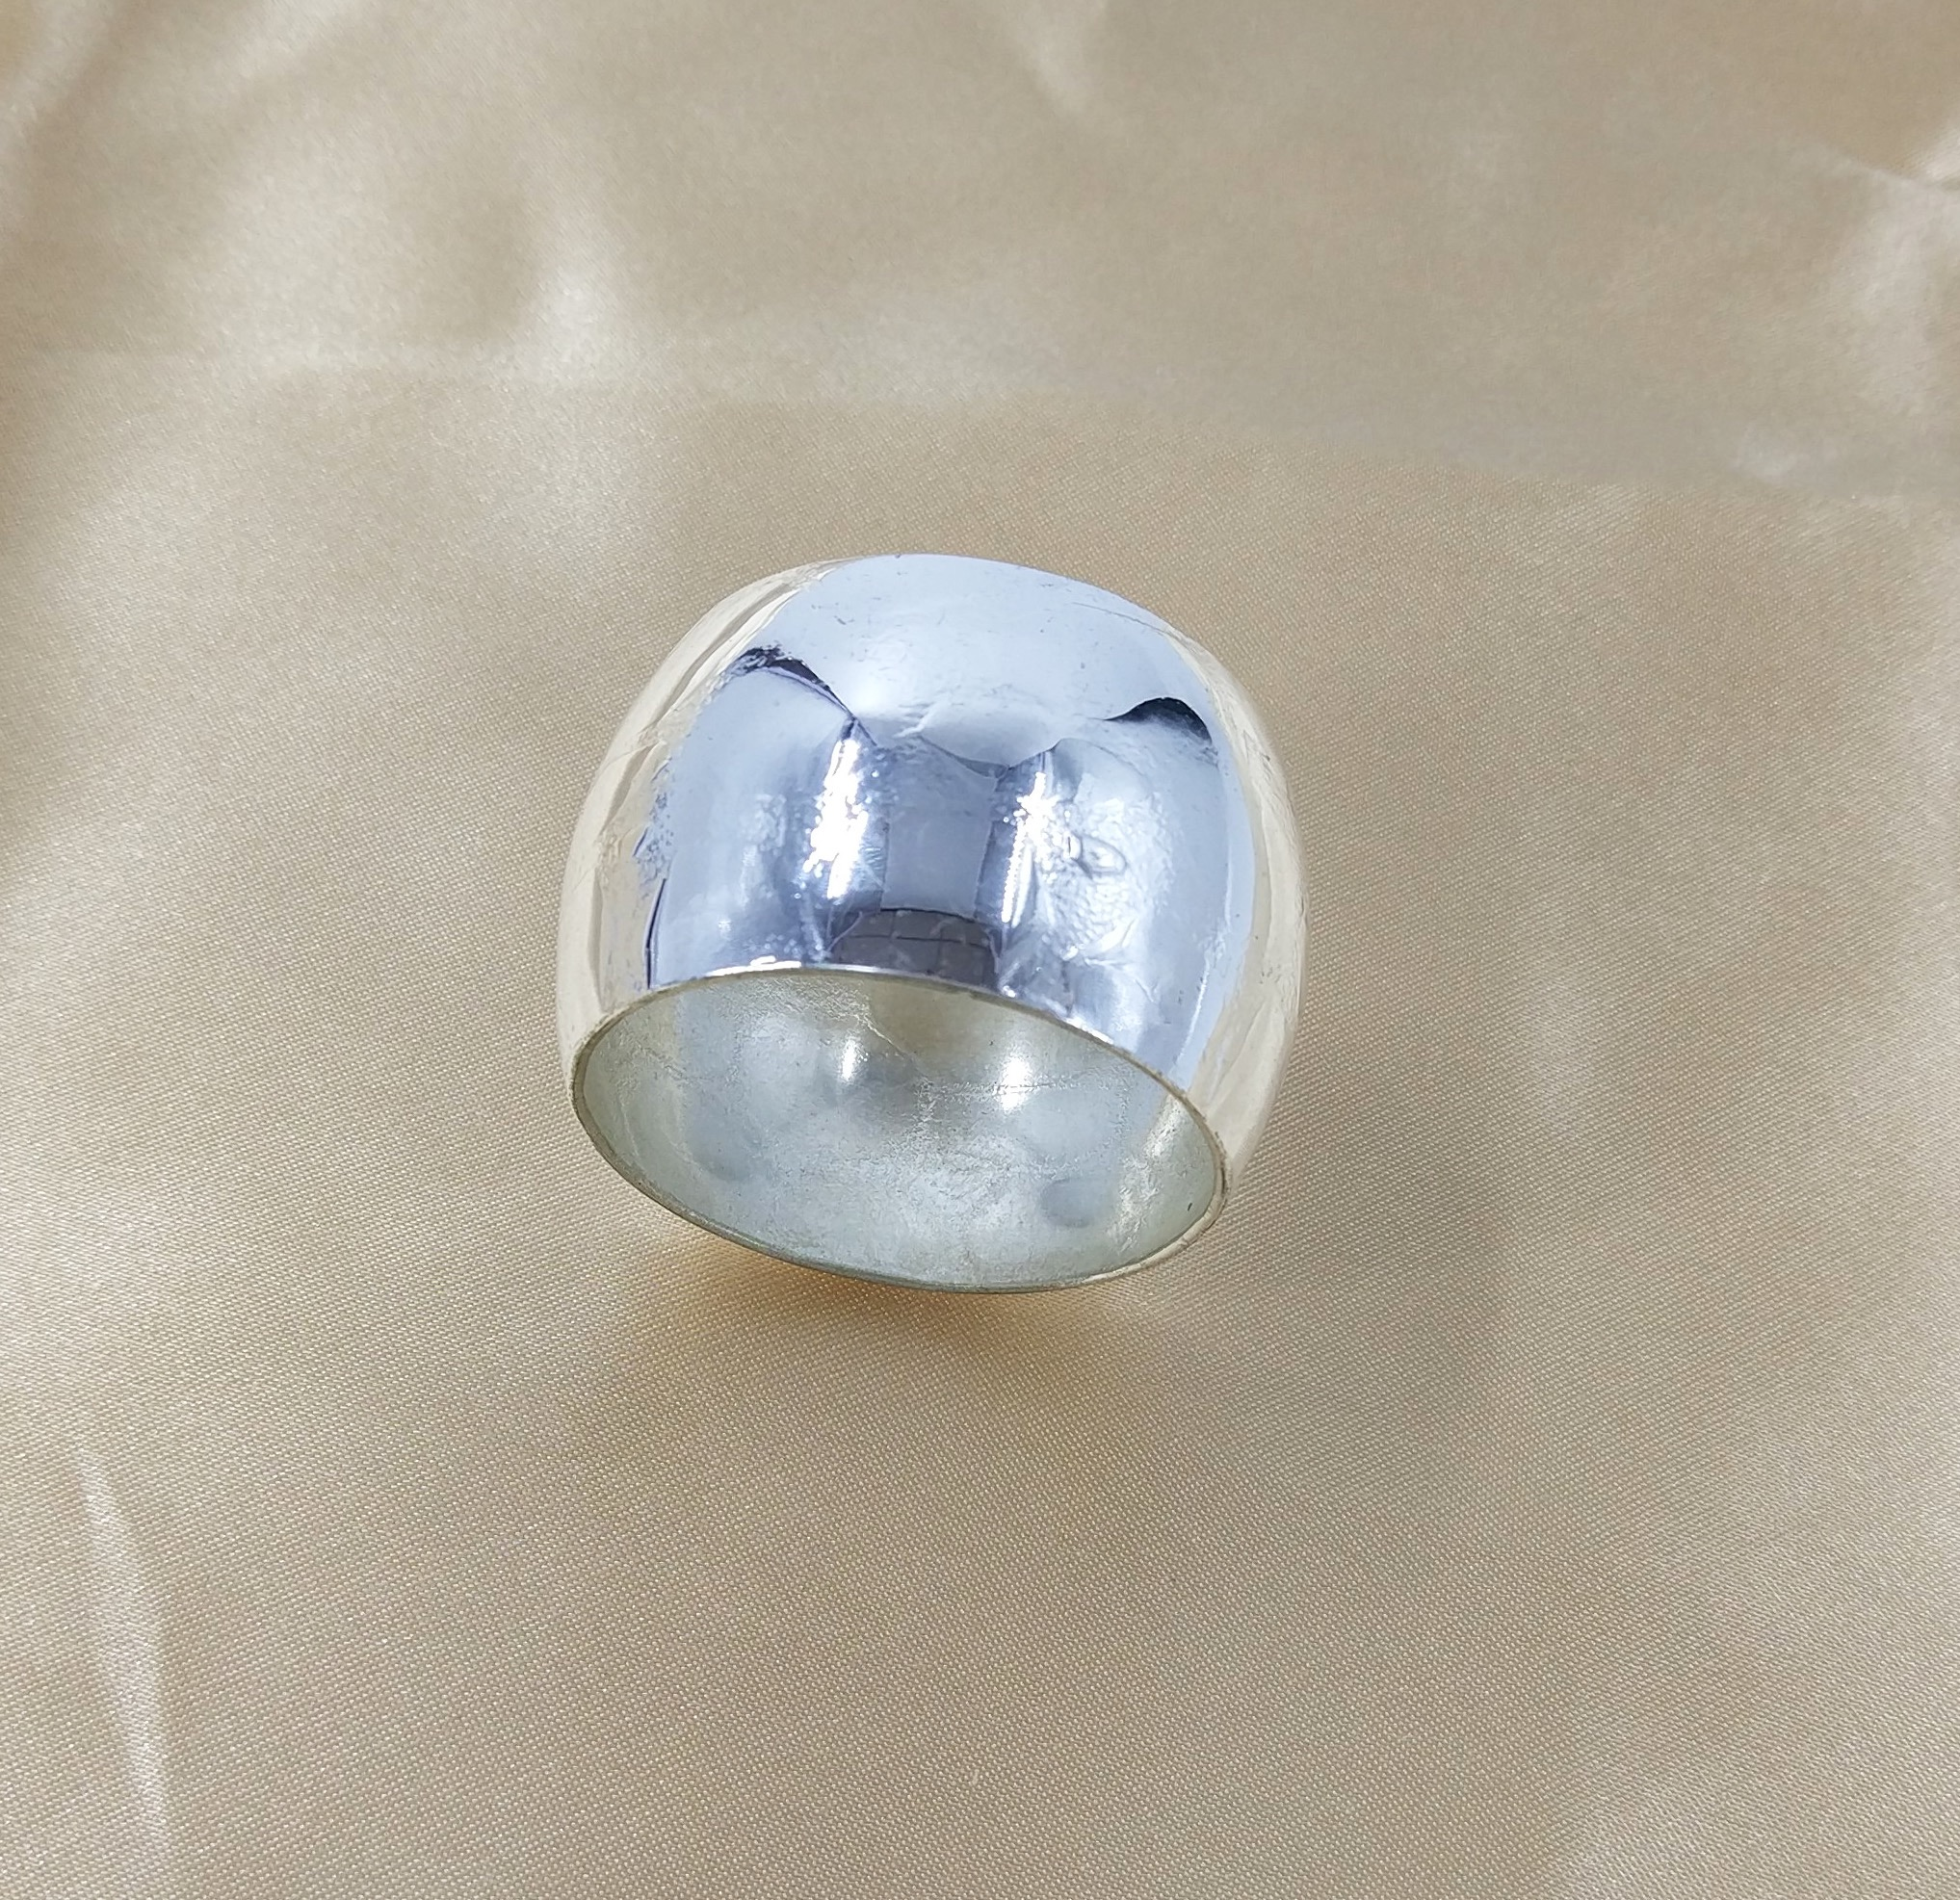 Silver napkin ring. From £0.40p each.